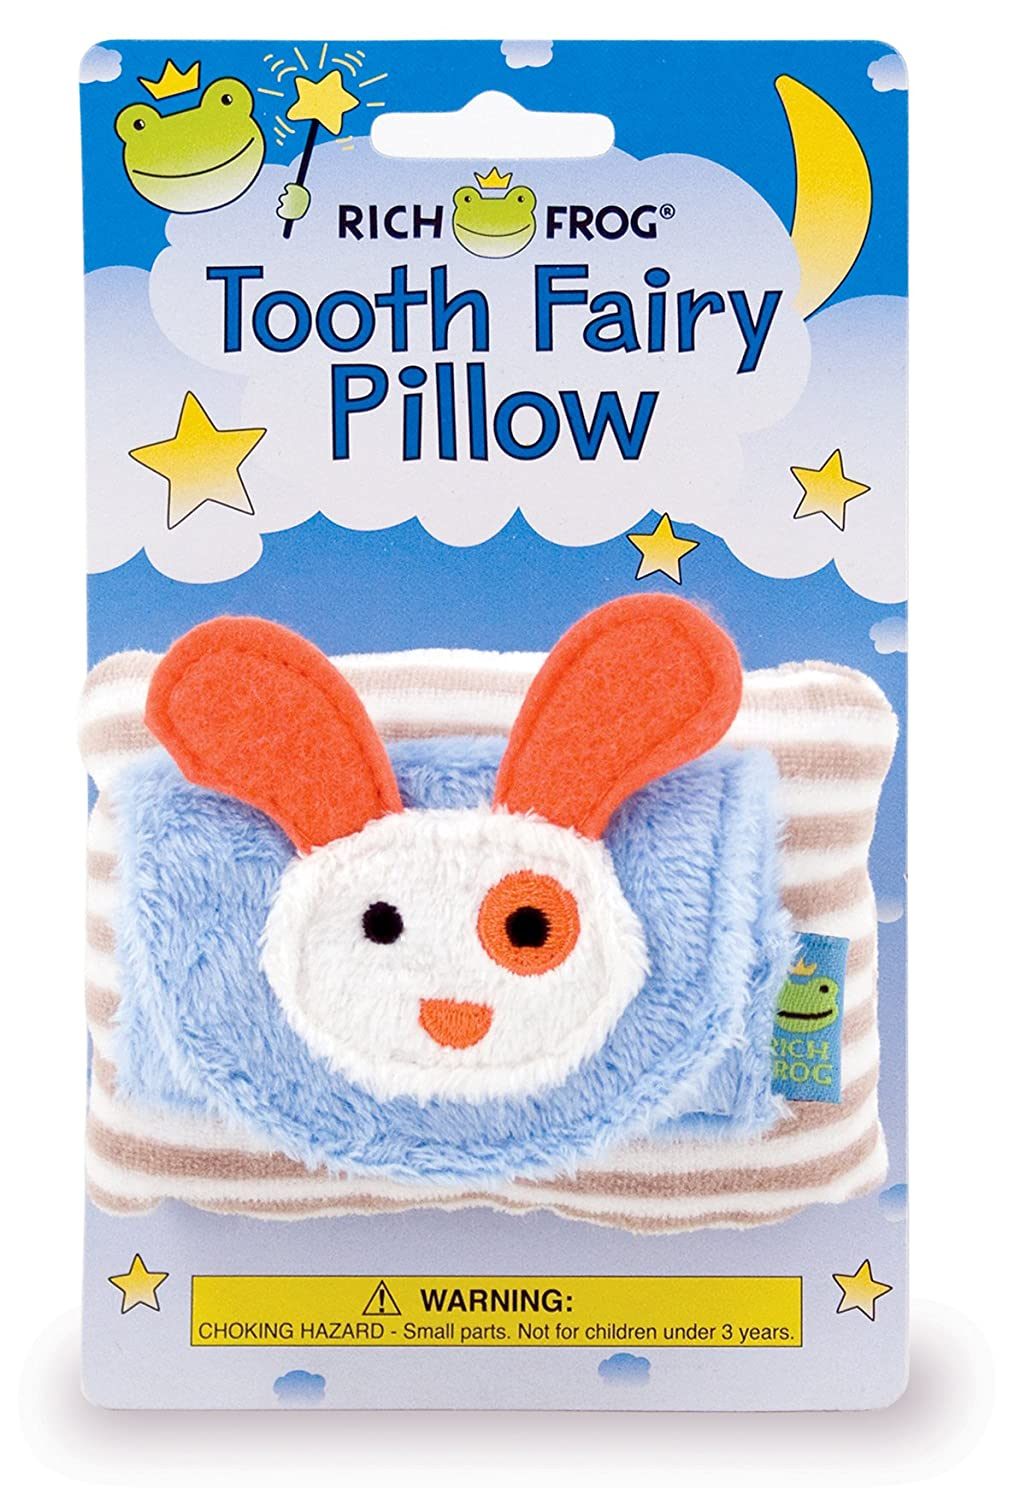 Rich Frog Boy Tooth Tooth Fairy Pillow and Tooth Keepsake, Blue - 4 Blue - 4 5460